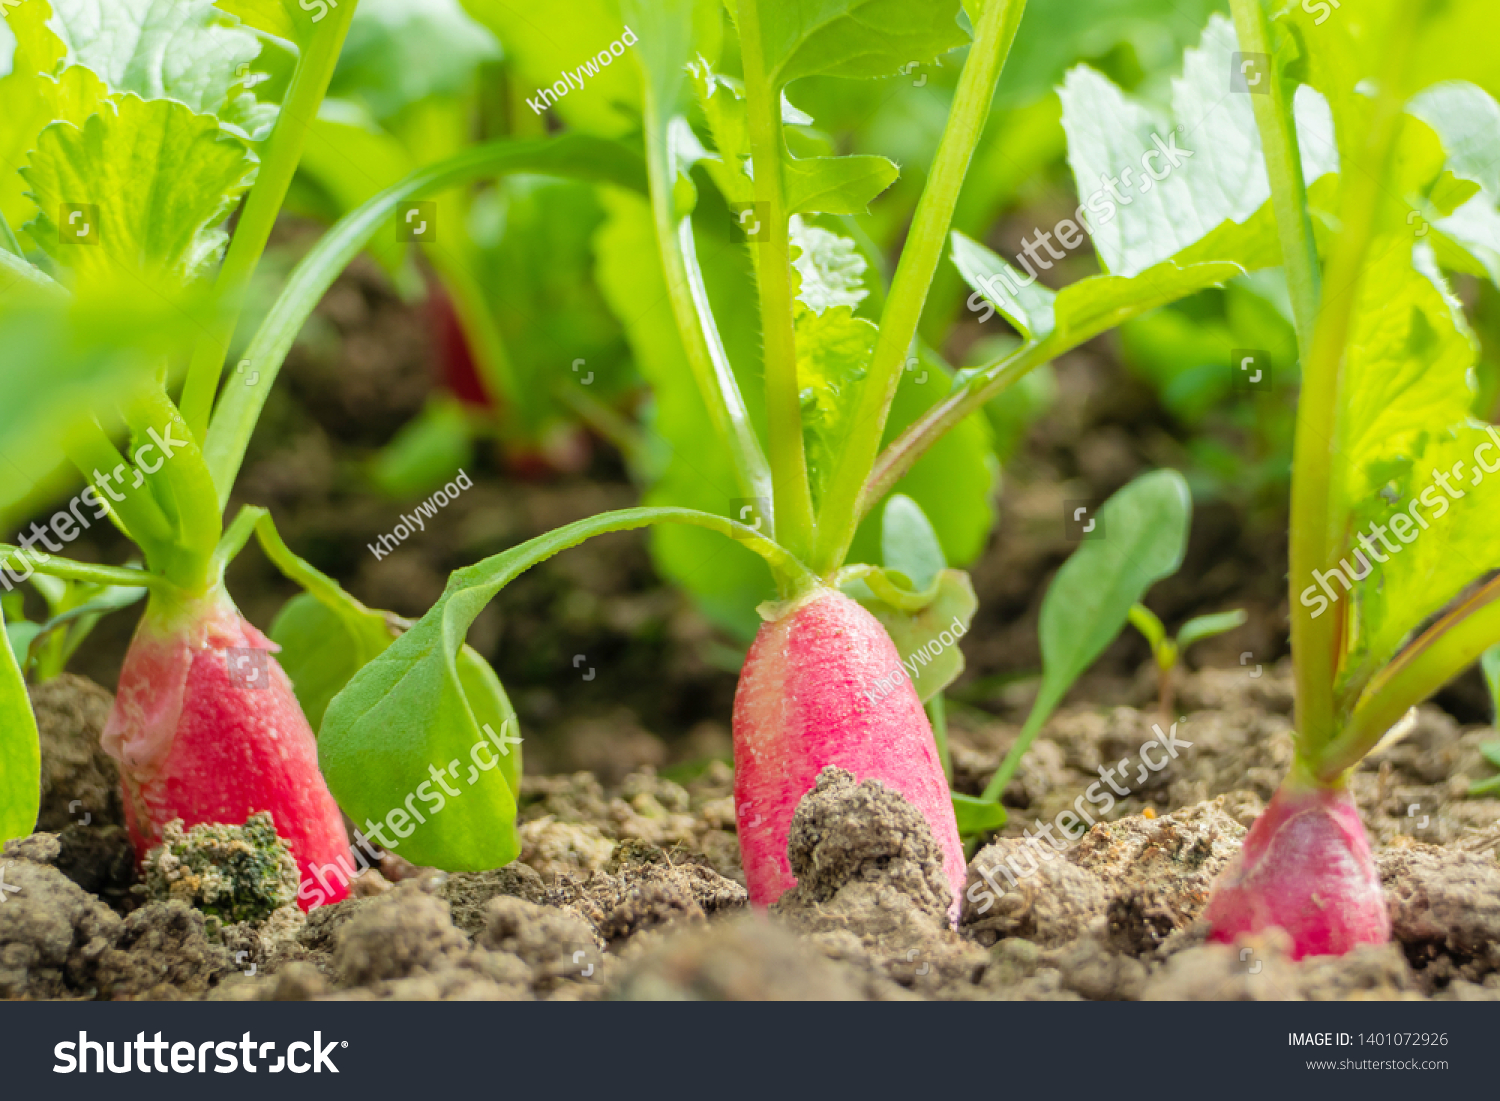 Radish grows in the ground, almost ripe. Macro photography on the theme of vegetable growing, eco-foods, vegetable growing, healthy nutrition. Vegan concept. #1401072926